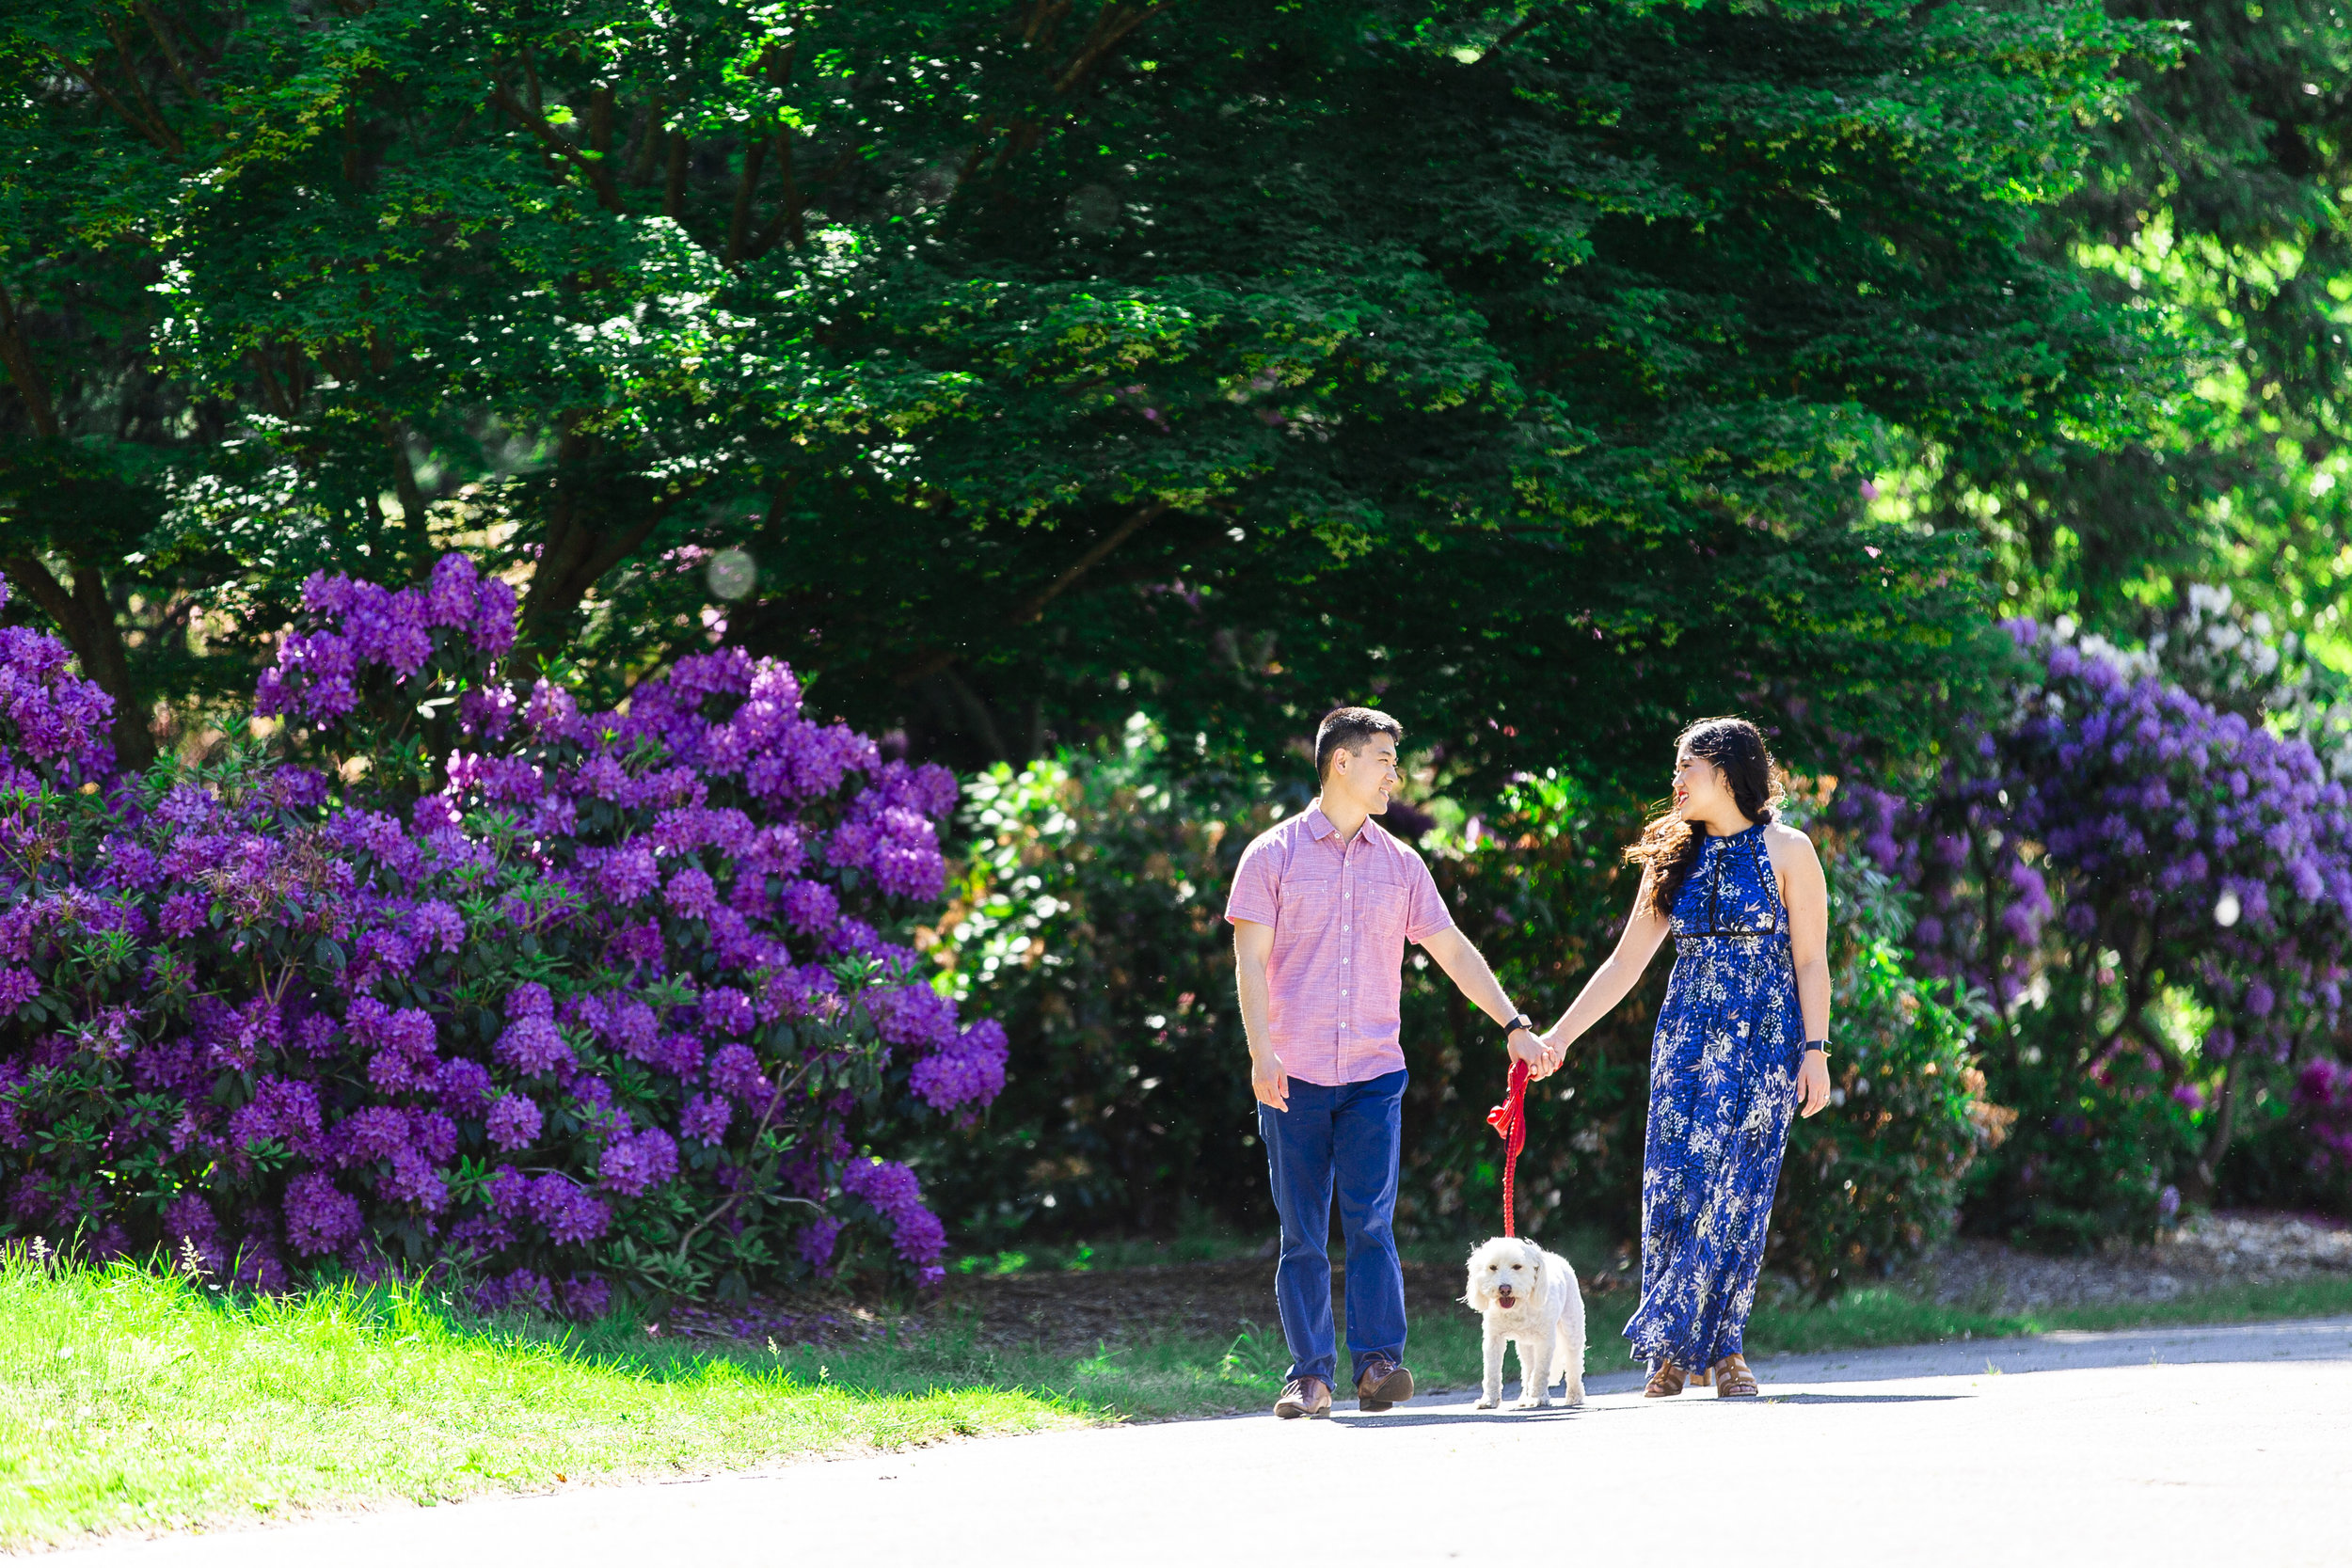 314A5799+Giovanni The Photographer+Best Boston Engagement Photography+Arnold Arboretum.jpg